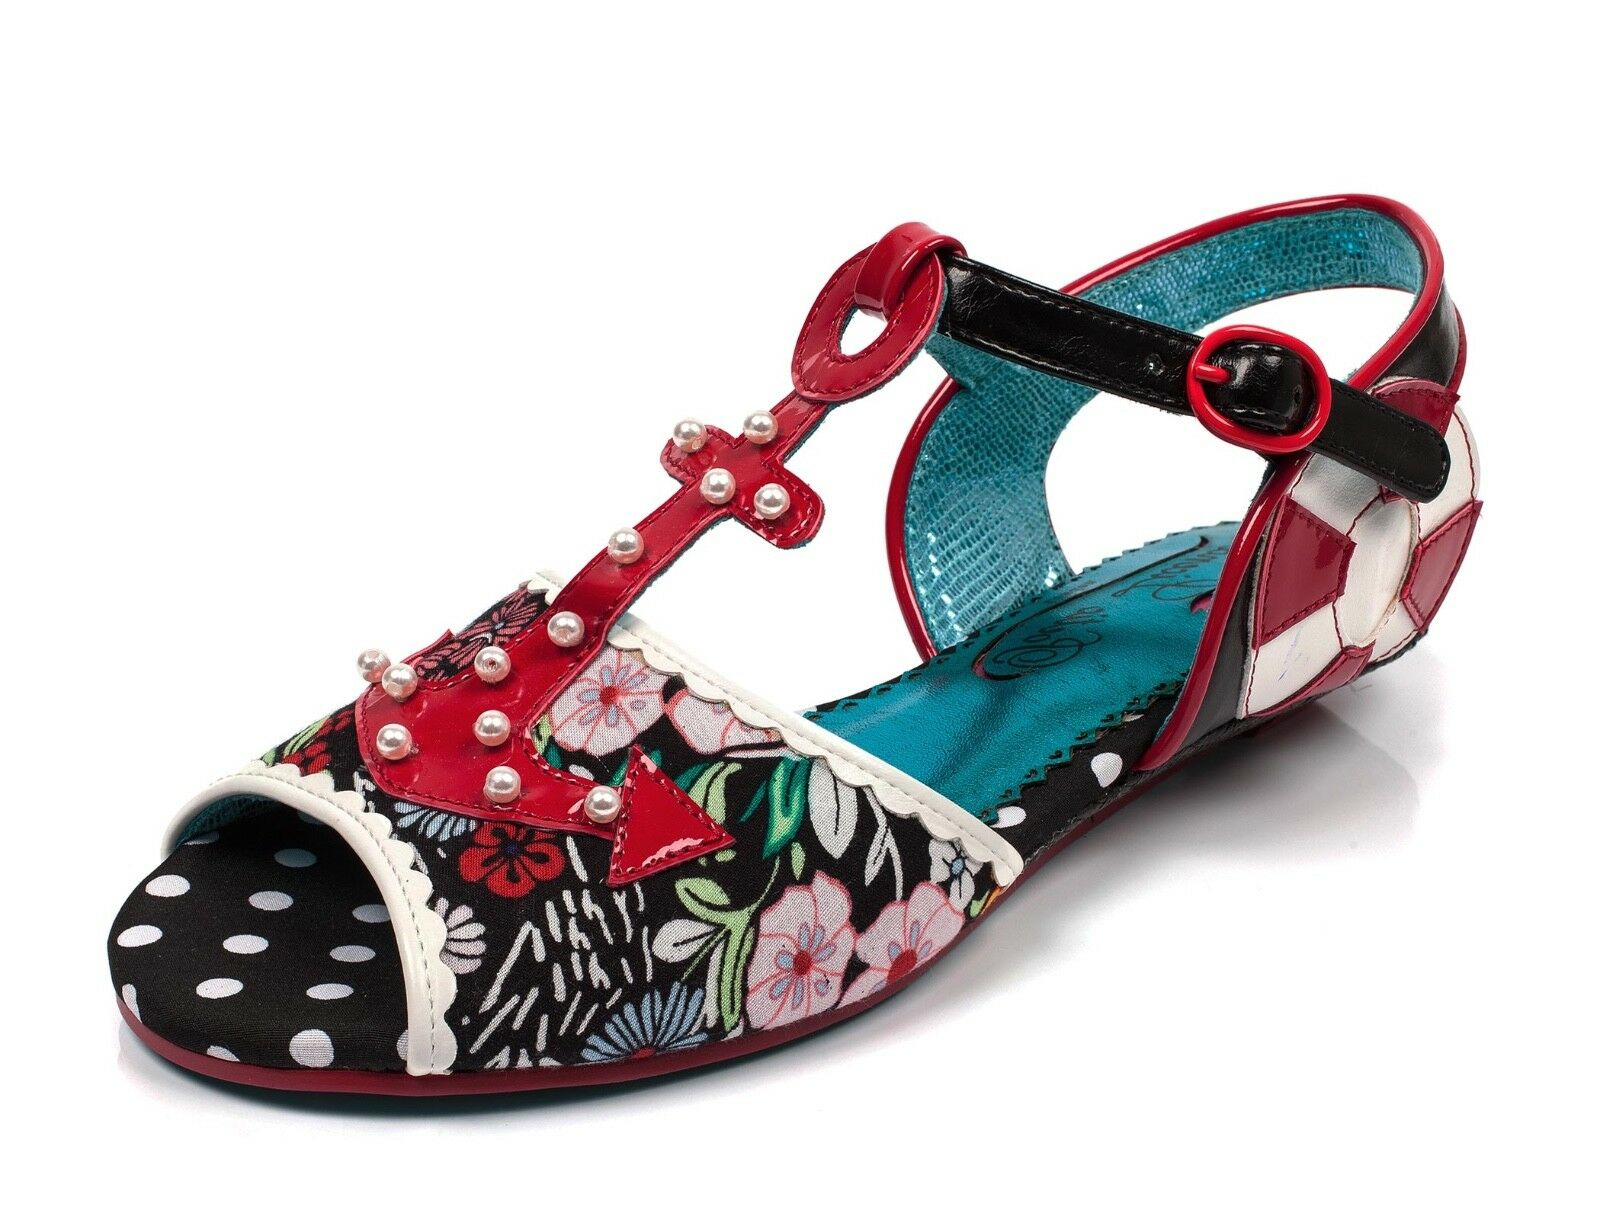 Poetic Licence NEW Sailor Beware schwarz rot anchor floral open toe sandals sz 3-9